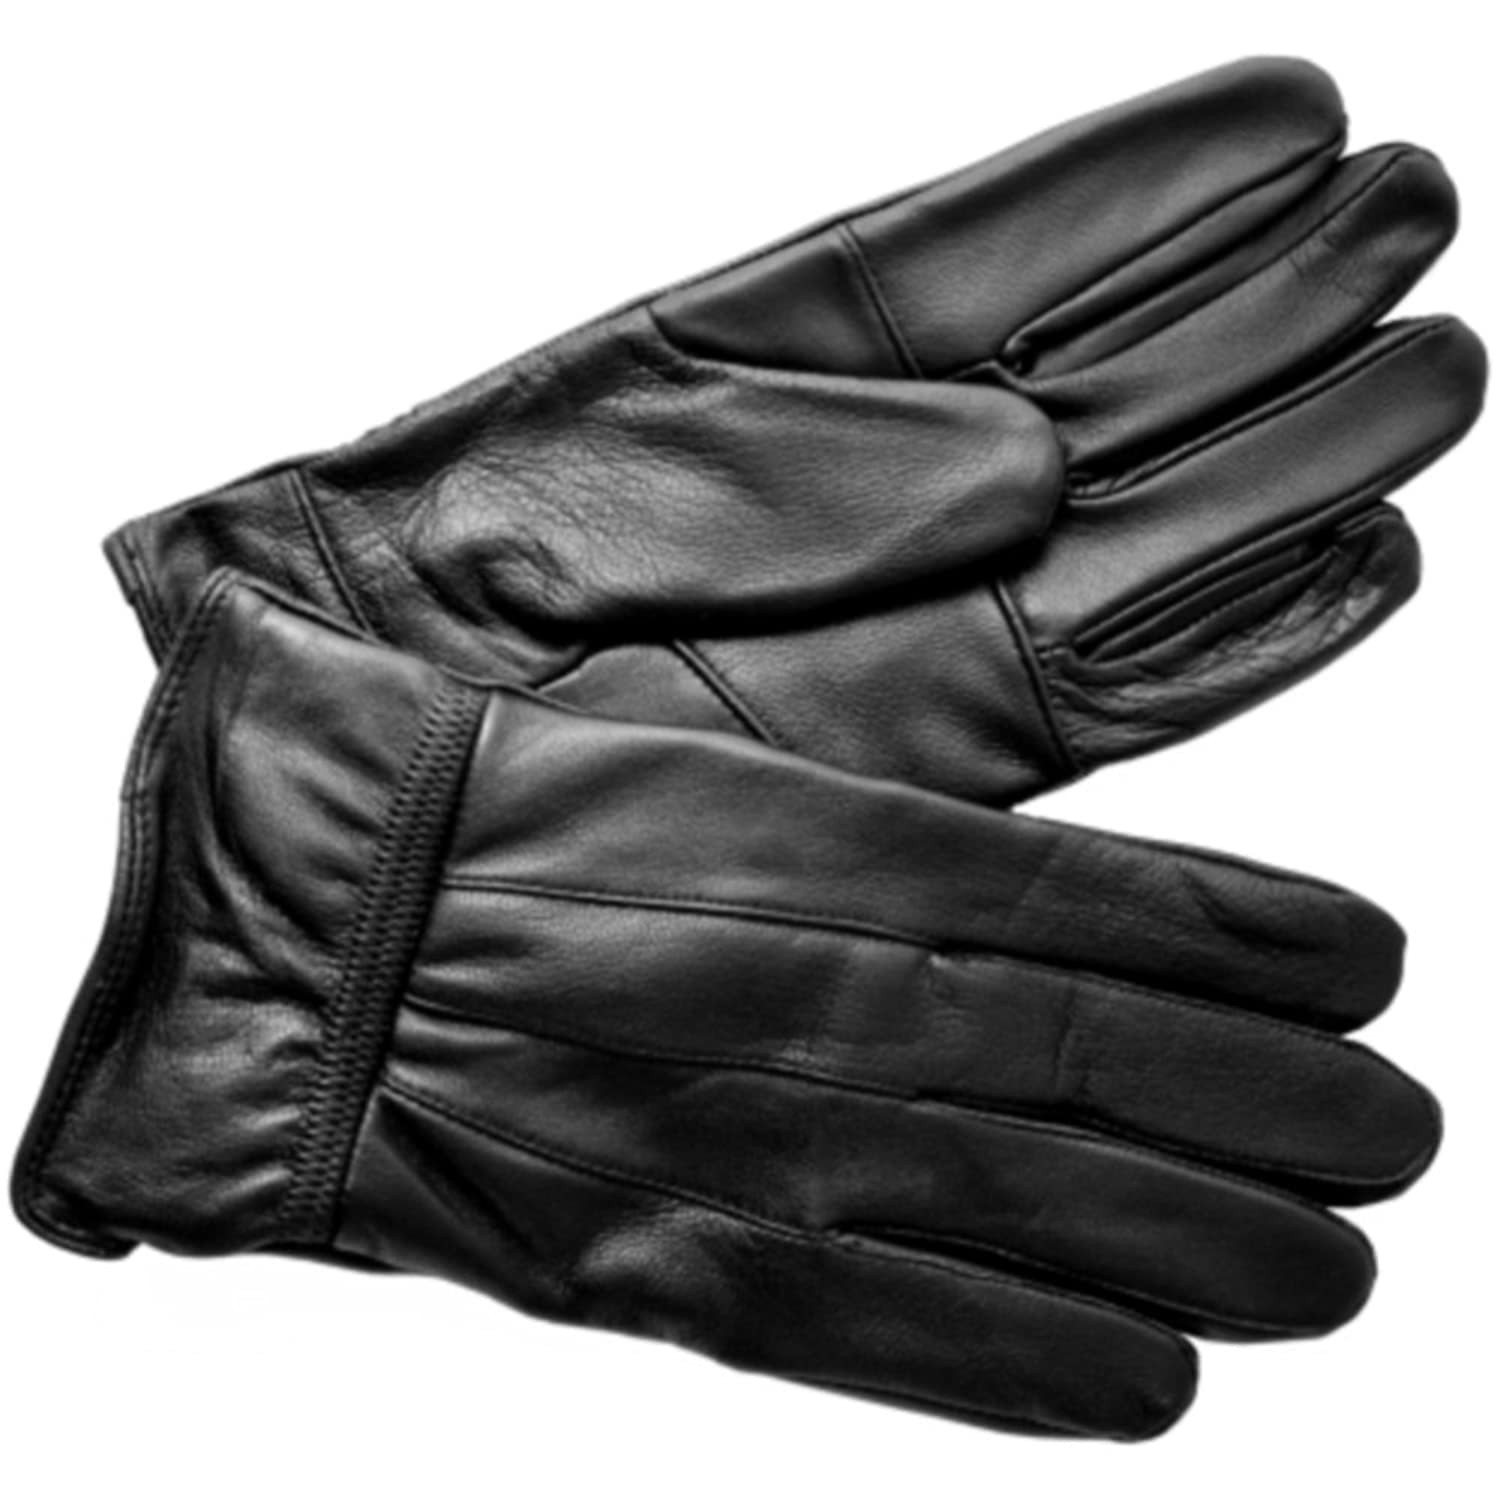 Mens gloves for driving - Leather Emporium Mens New Black Soft Leather Driving Gloves 8922 Medium Amazon Co Uk Clothing